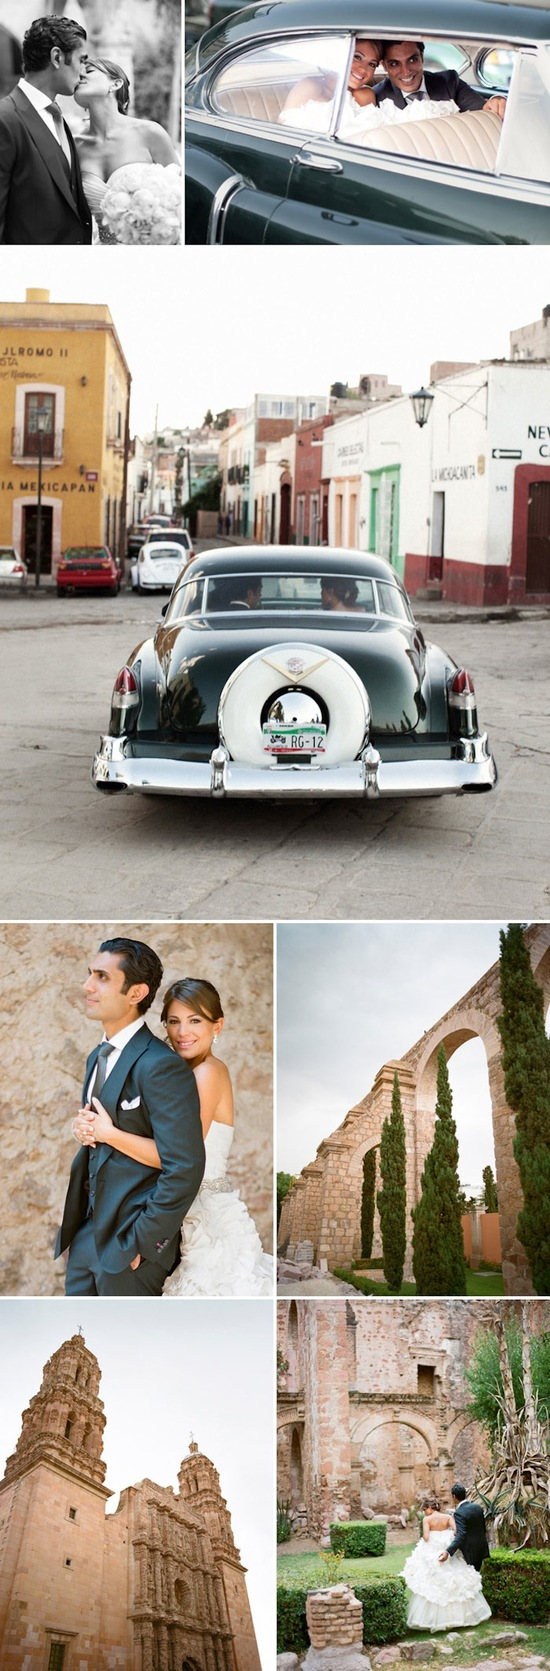 Bright destination wedding in Mexico by Aaron Delesie 8